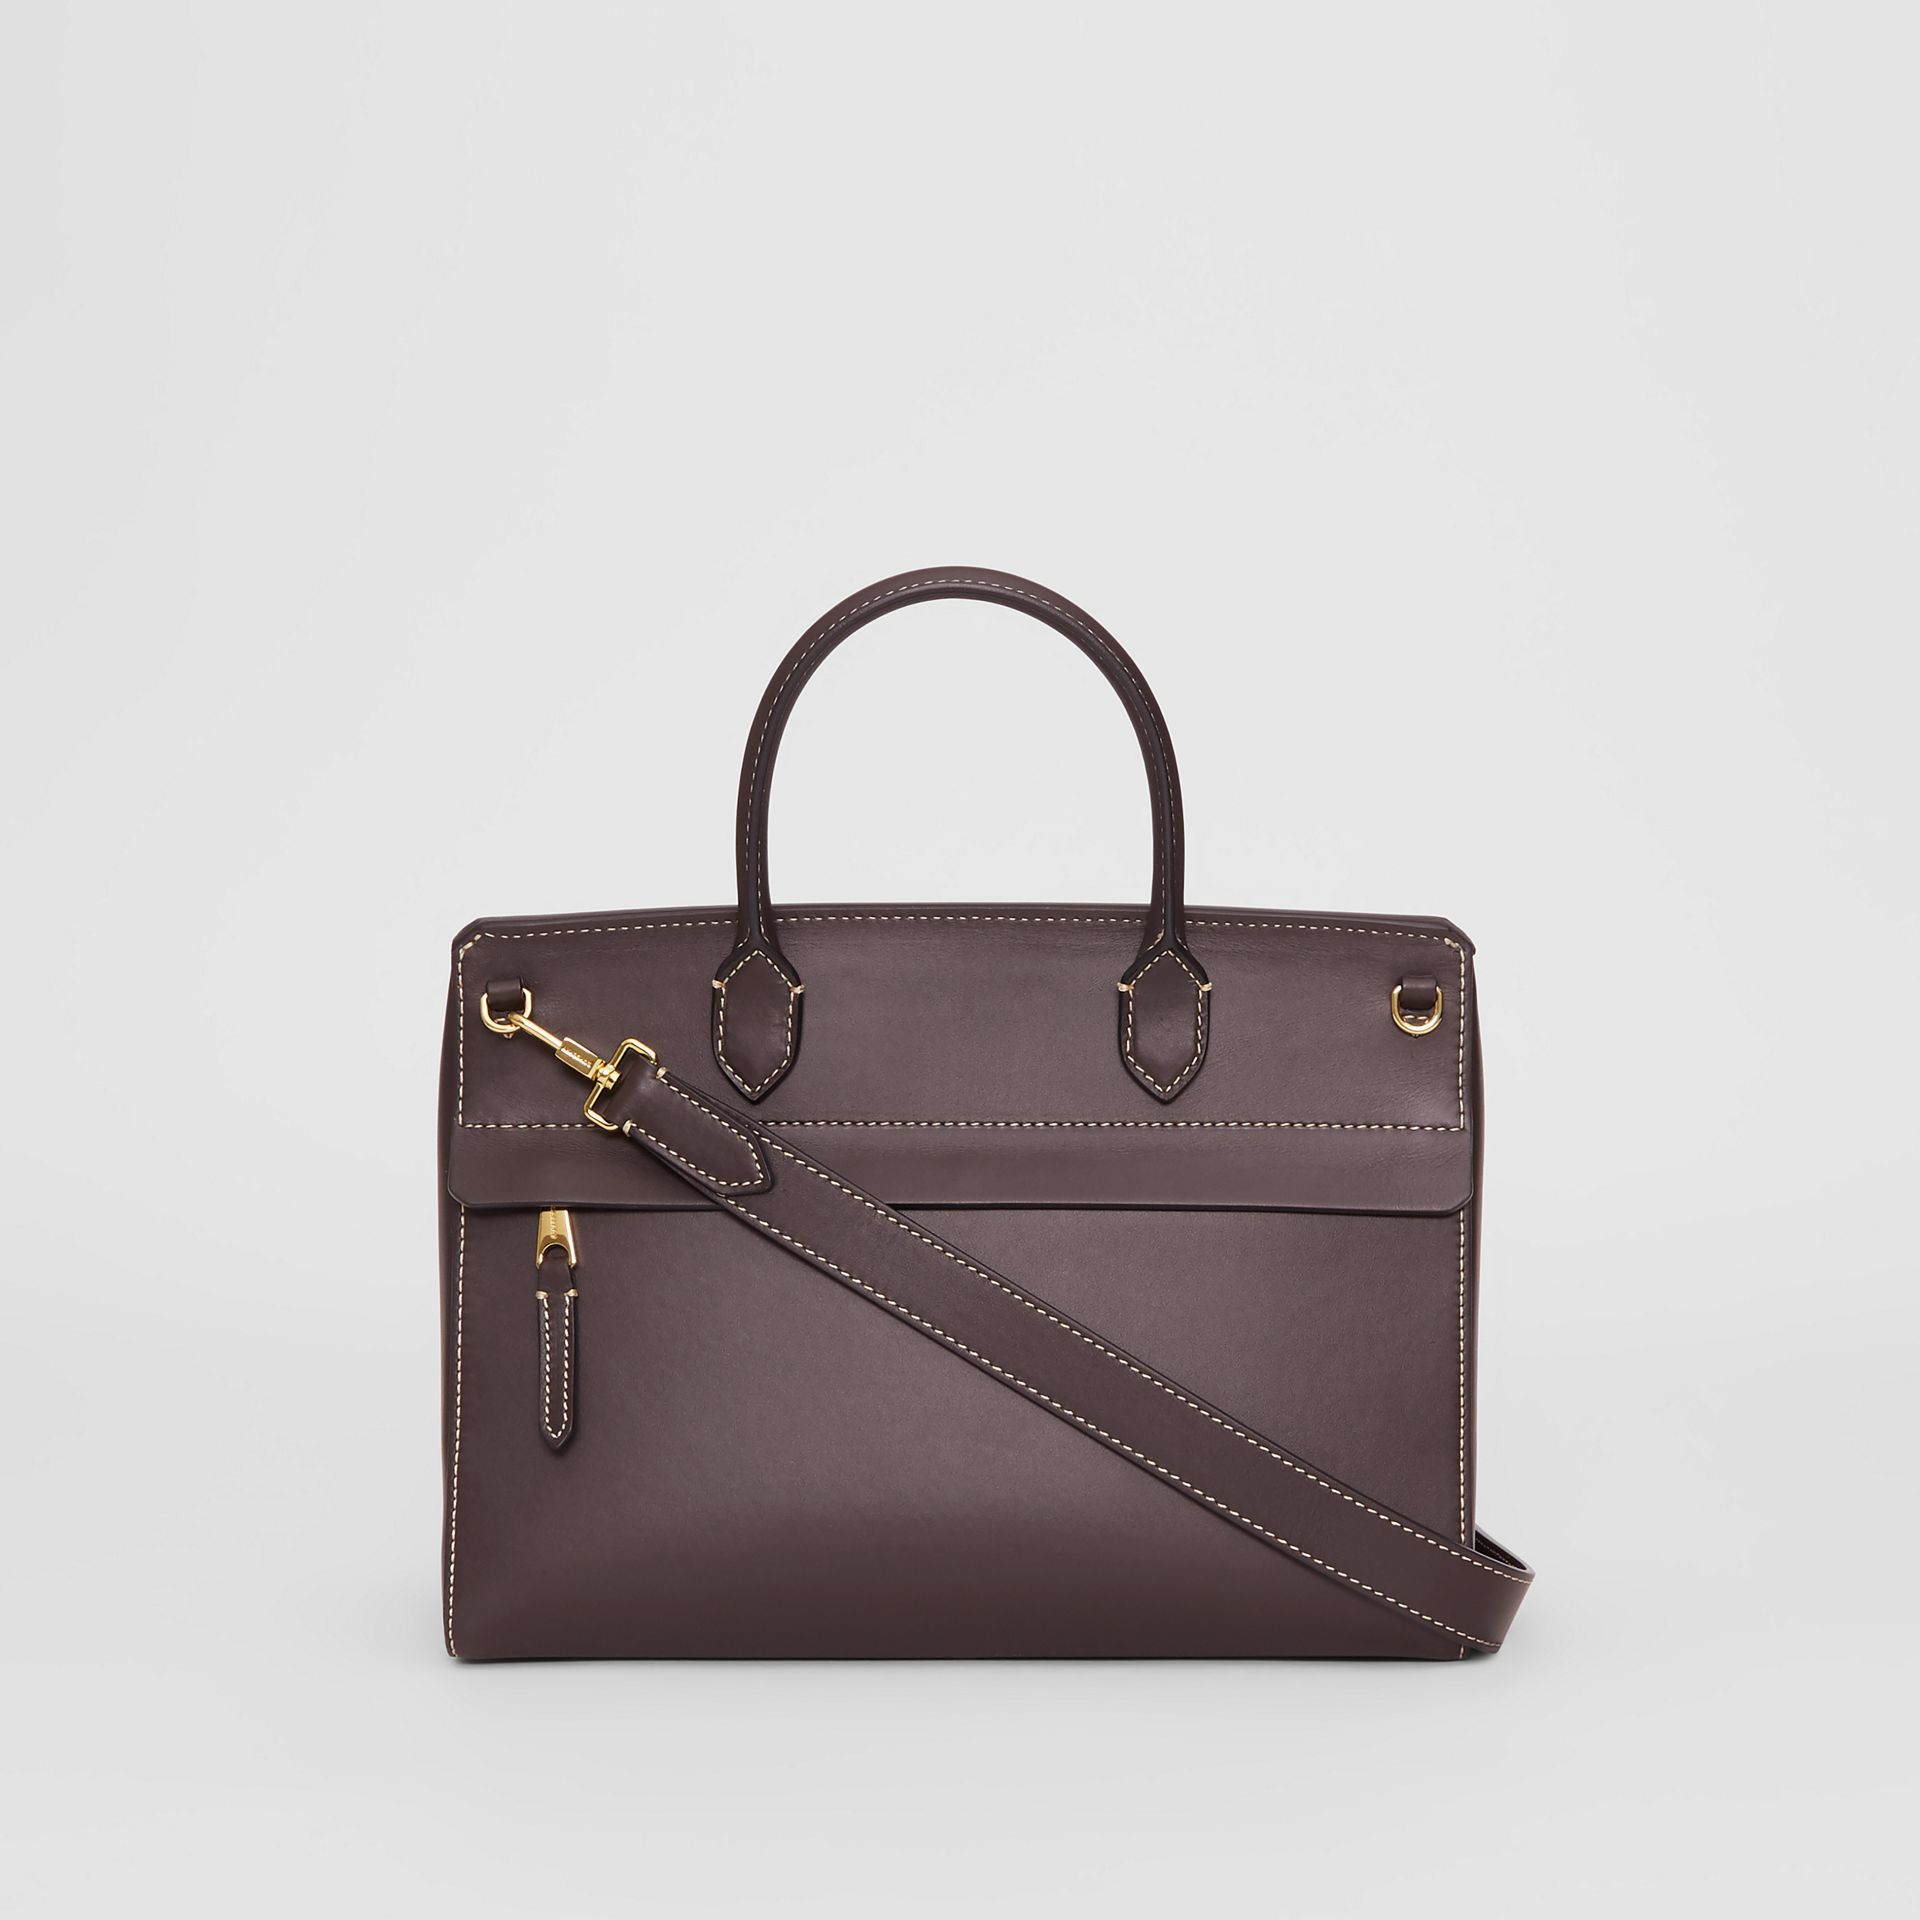 Small Leather Elizabeth Bag in Coffee - Women | Burberry Australia - gallery image 5